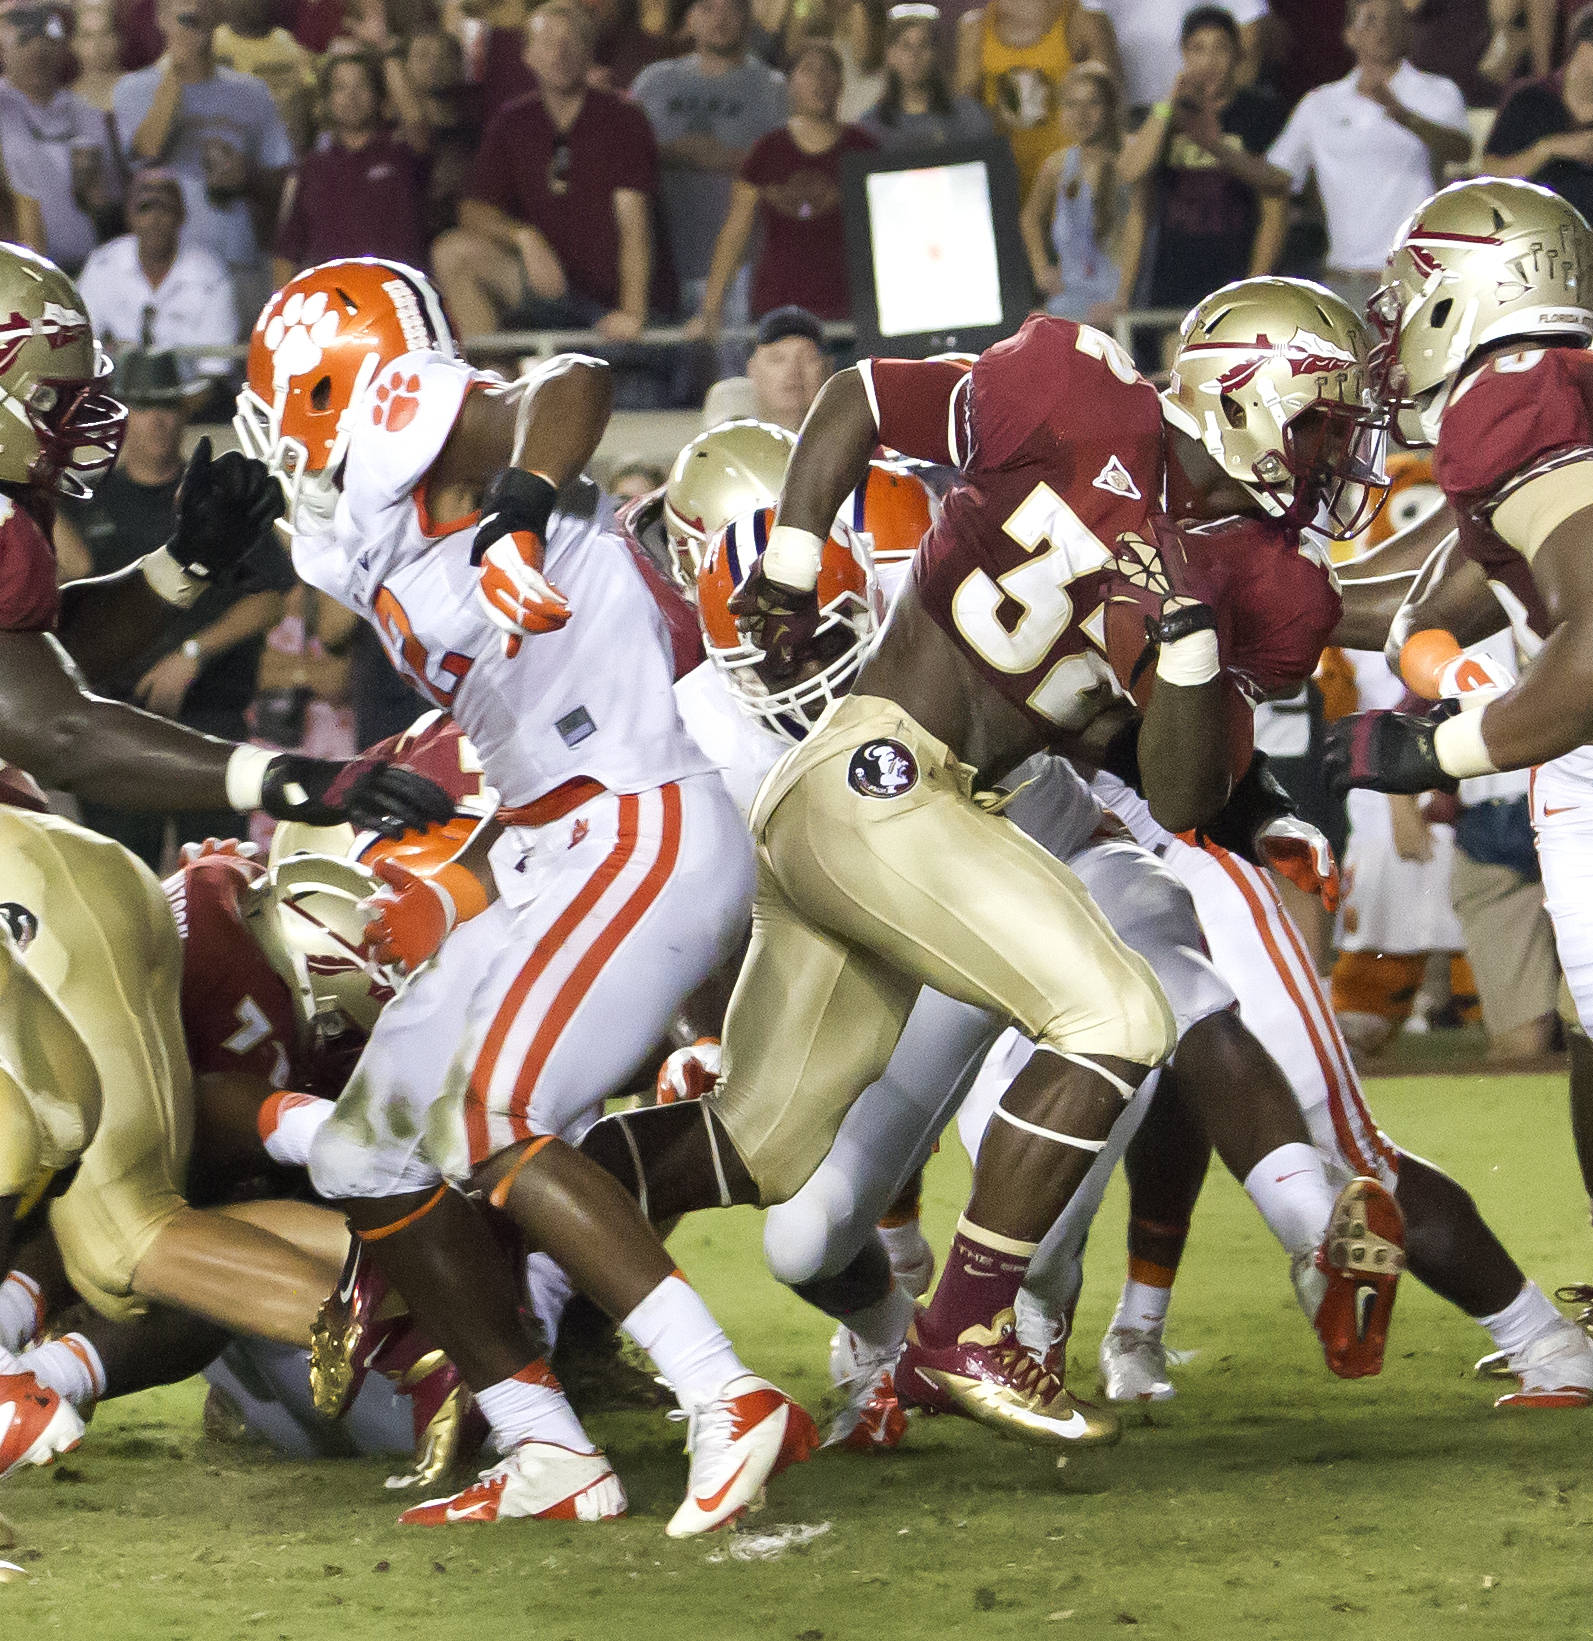 James Wilder Jr. (32) breaking thru the pack, FSU vs Clemson, 9/22/12 (Photo by Steve Musco)